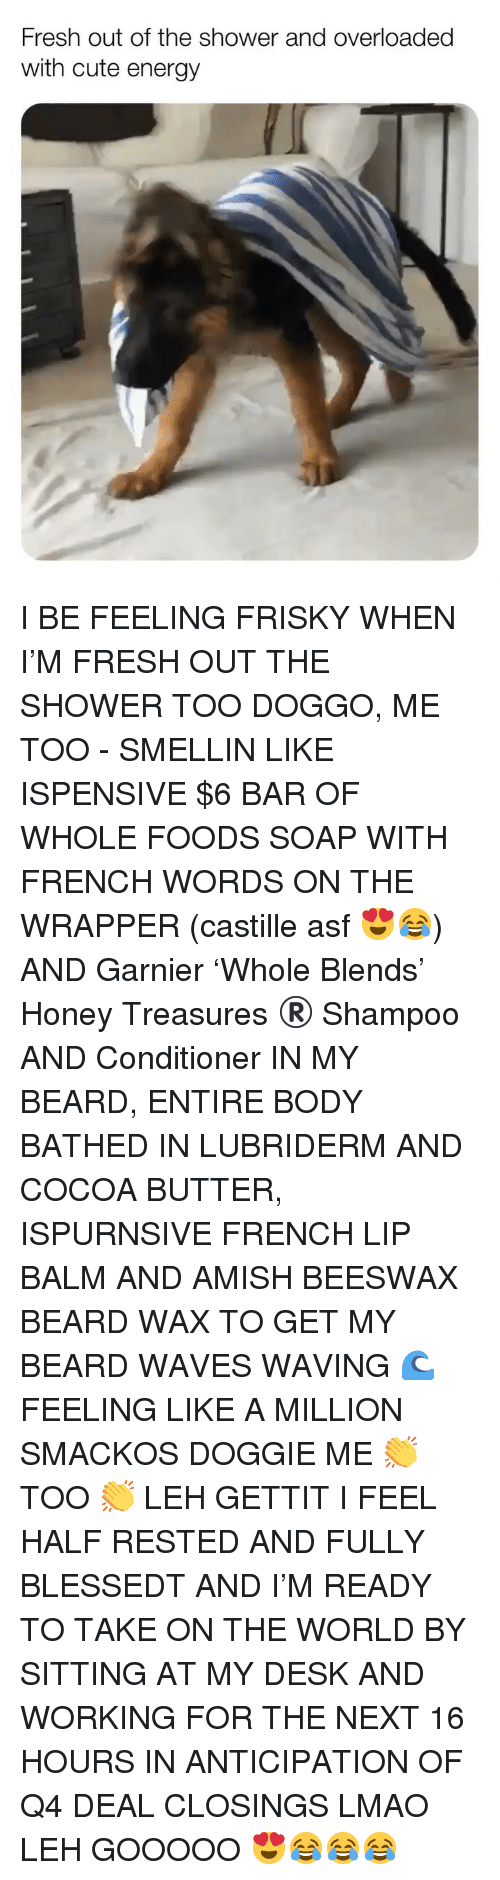 whole foods: Fresh out of the shower and overloaded  with cute energy I BE FEELING FRISKY WHEN I'M FRESH OUT THE SHOWER TOO DOGGO, ME TOO - SMELLIN LIKE ISPENSIVE $6 BAR OF WHOLE FOODS SOAP WITH FRENCH WORDS ON THE WRAPPER (castille asf 😍😂) AND Garnier 'Whole Blends' Honey Treasures ®️ Shampoo AND Conditioner IN MY BEARD, ENTIRE BODY BATHED IN LUBRIDERM AND COCOA BUTTER, ISPURNSIVE FRENCH LIP BALM AND AMISH BEESWAX BEARD WAX TO GET MY BEARD WAVES WAVING 🌊 FEELING LIKE A MILLION SMACKOS DOGGIE ME 👏 TOO 👏 LEH GETTIT I FEEL HALF RESTED AND FULLY BLESSEDT AND I'M READY TO TAKE ON THE WORLD BY SITTING AT MY DESK AND WORKING FOR THE NEXT 16 HOURS IN ANTICIPATION OF Q4 DEAL CLOSINGS LMAO LEH GOOOOO 😍😂😂😂